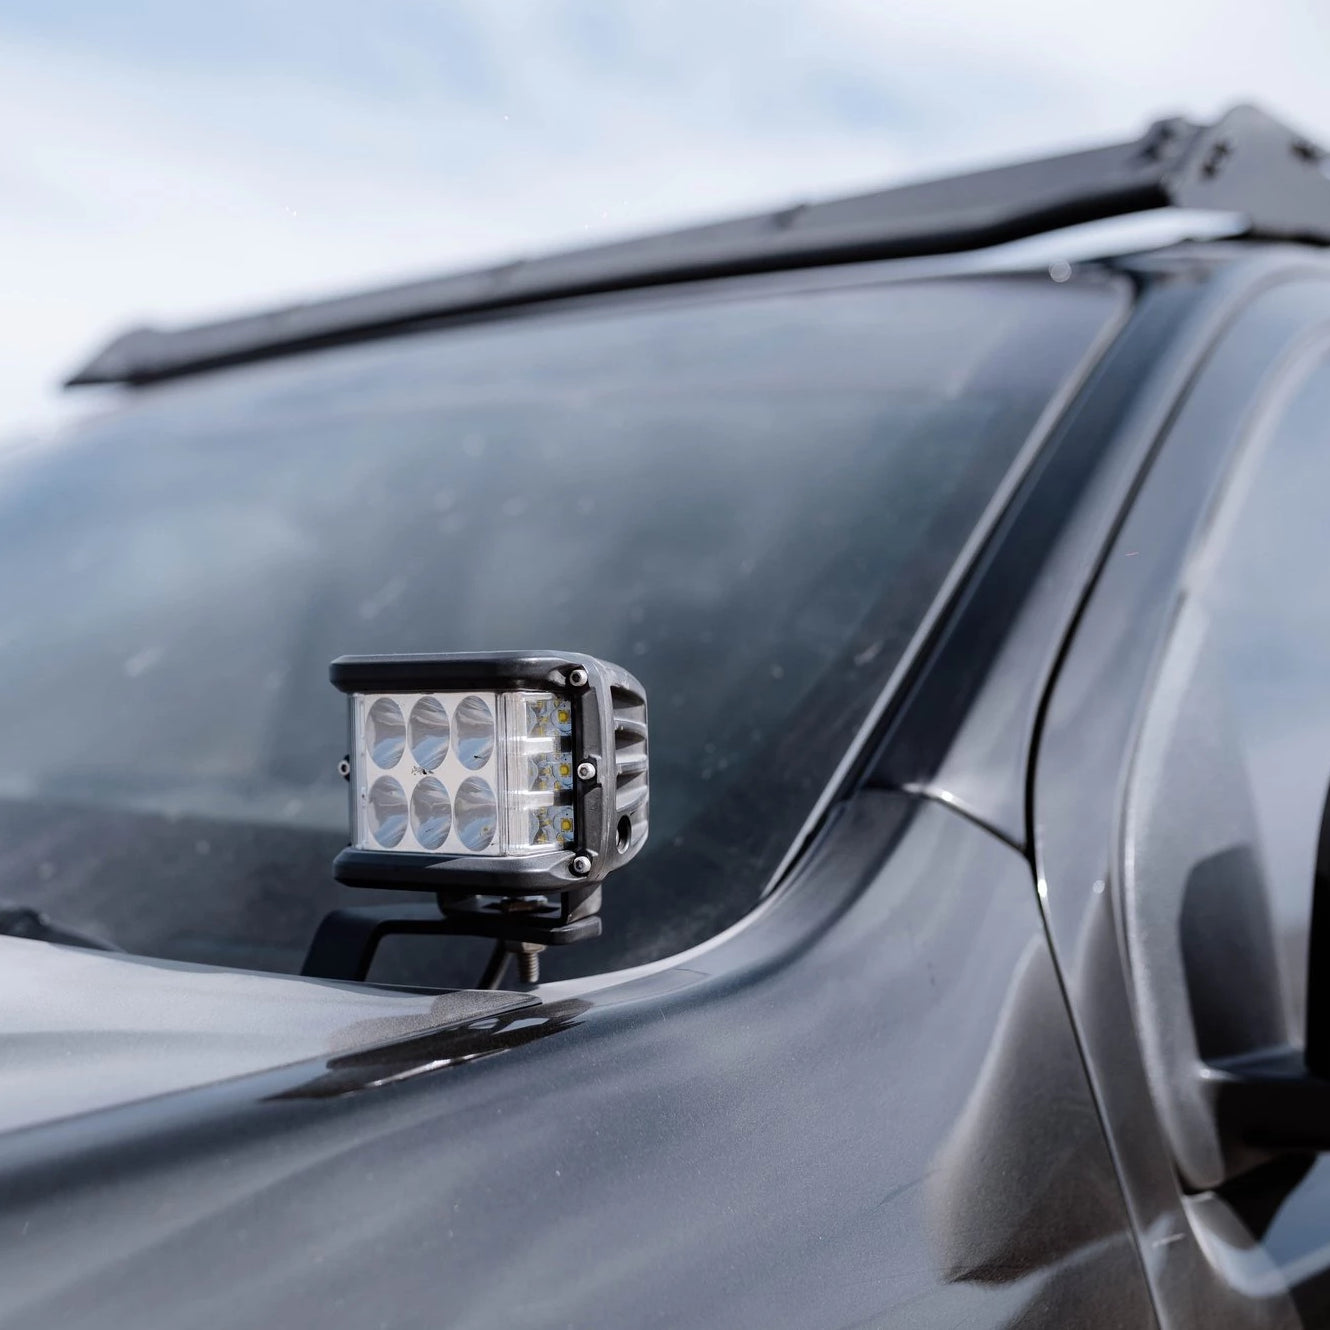 Cali Raised LED 2015-2020 Chevy Colorado/Canyon Low Profile Ditch Light Combo